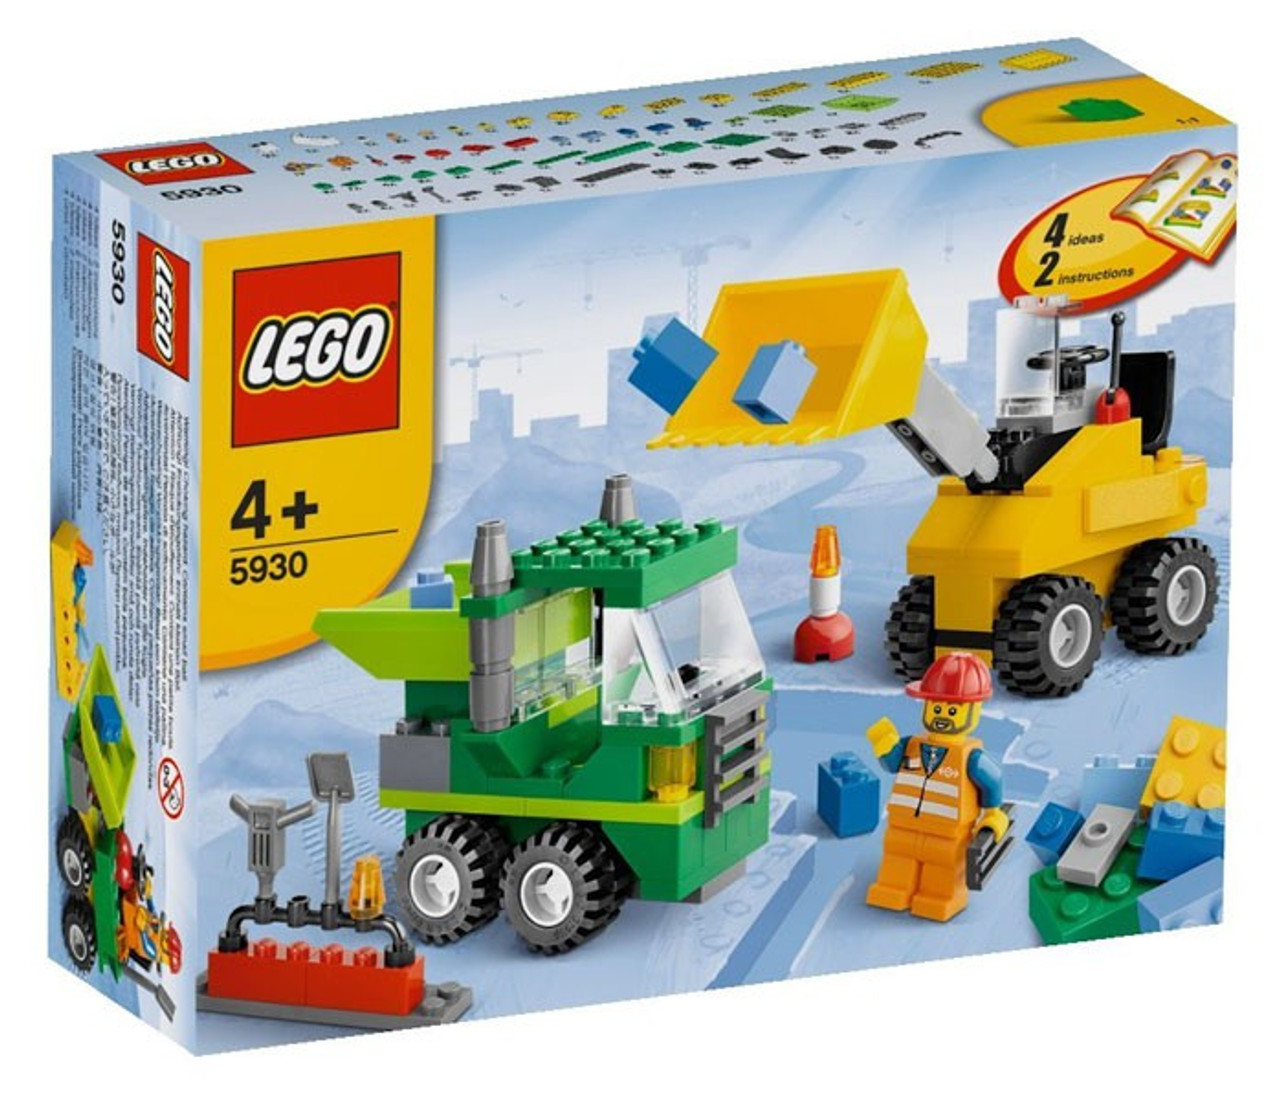 LEGO Road Construction Building Set #5930